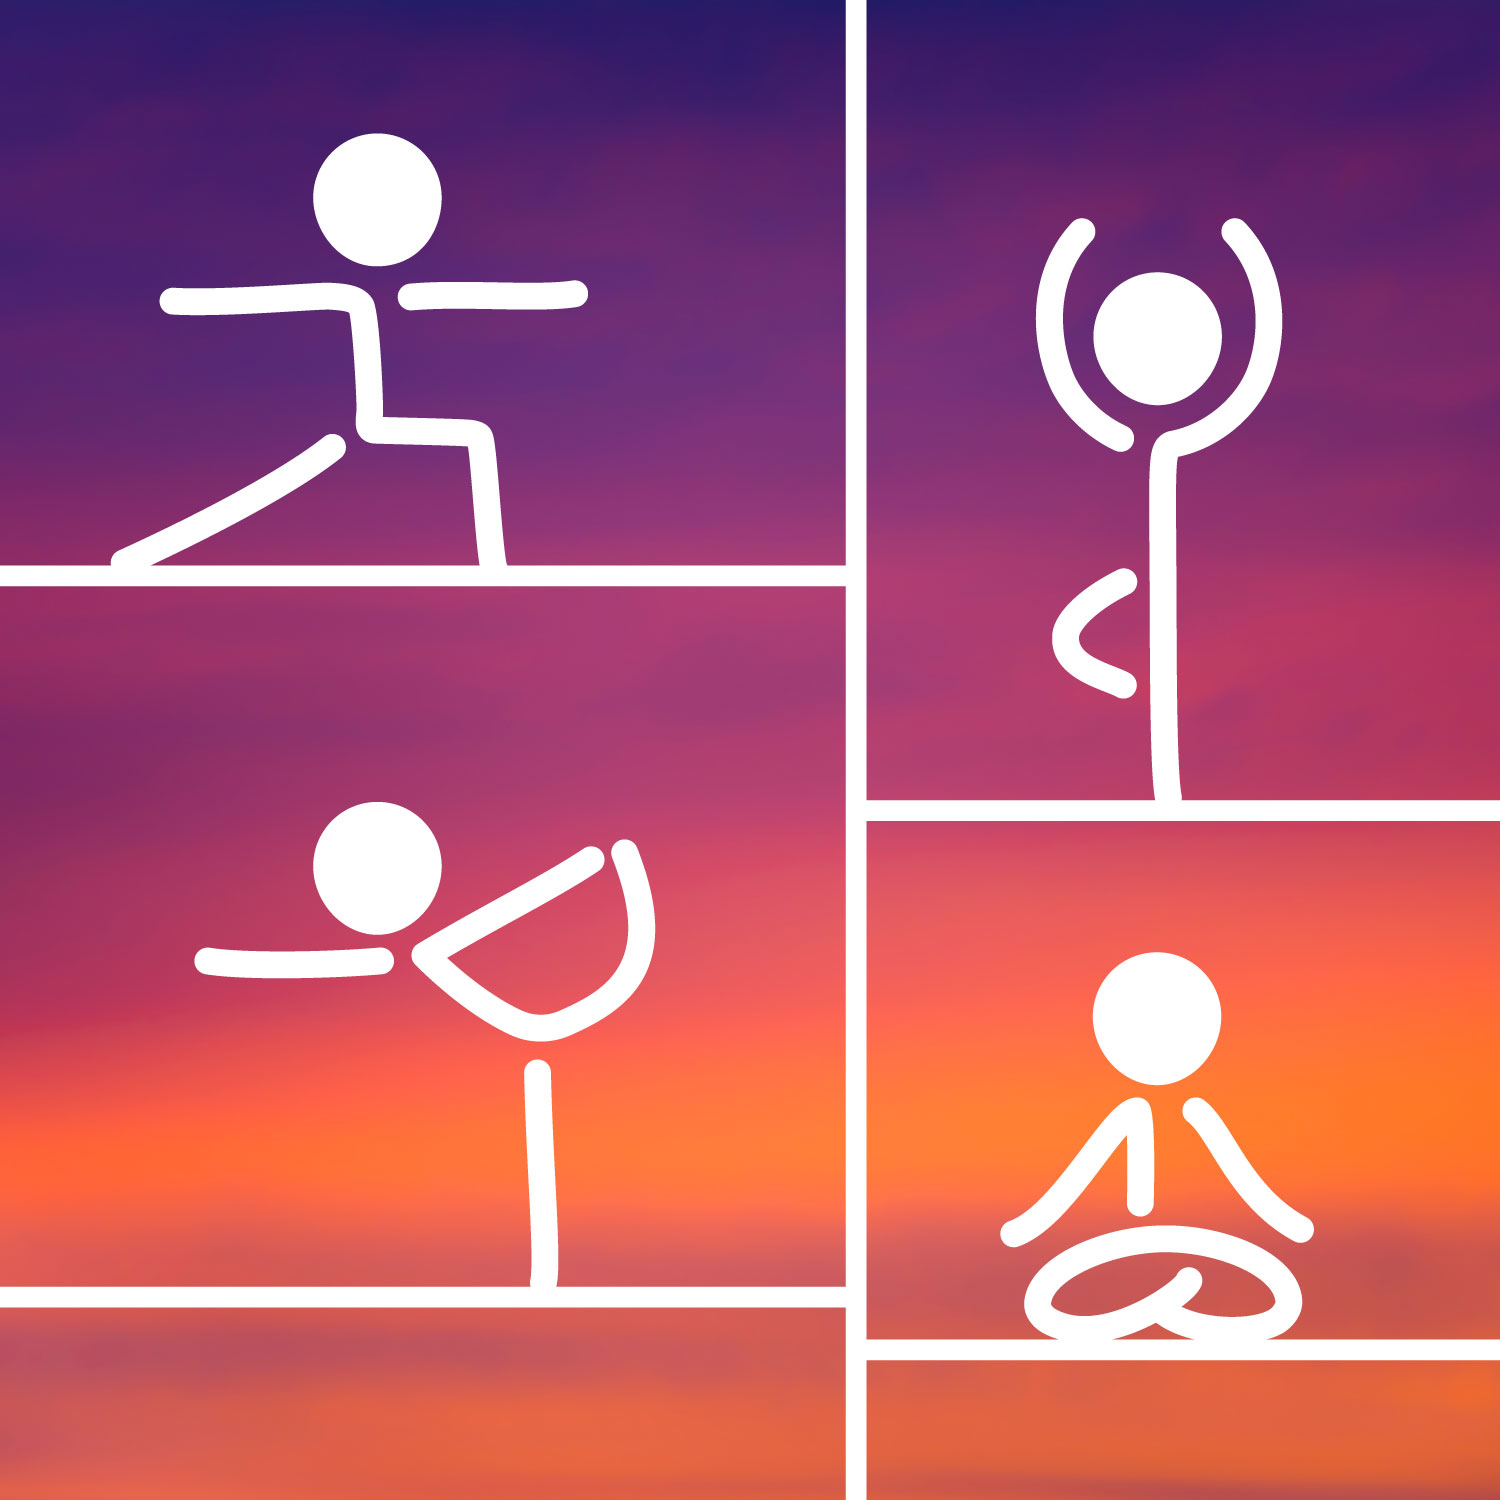 drawing of yoga poses